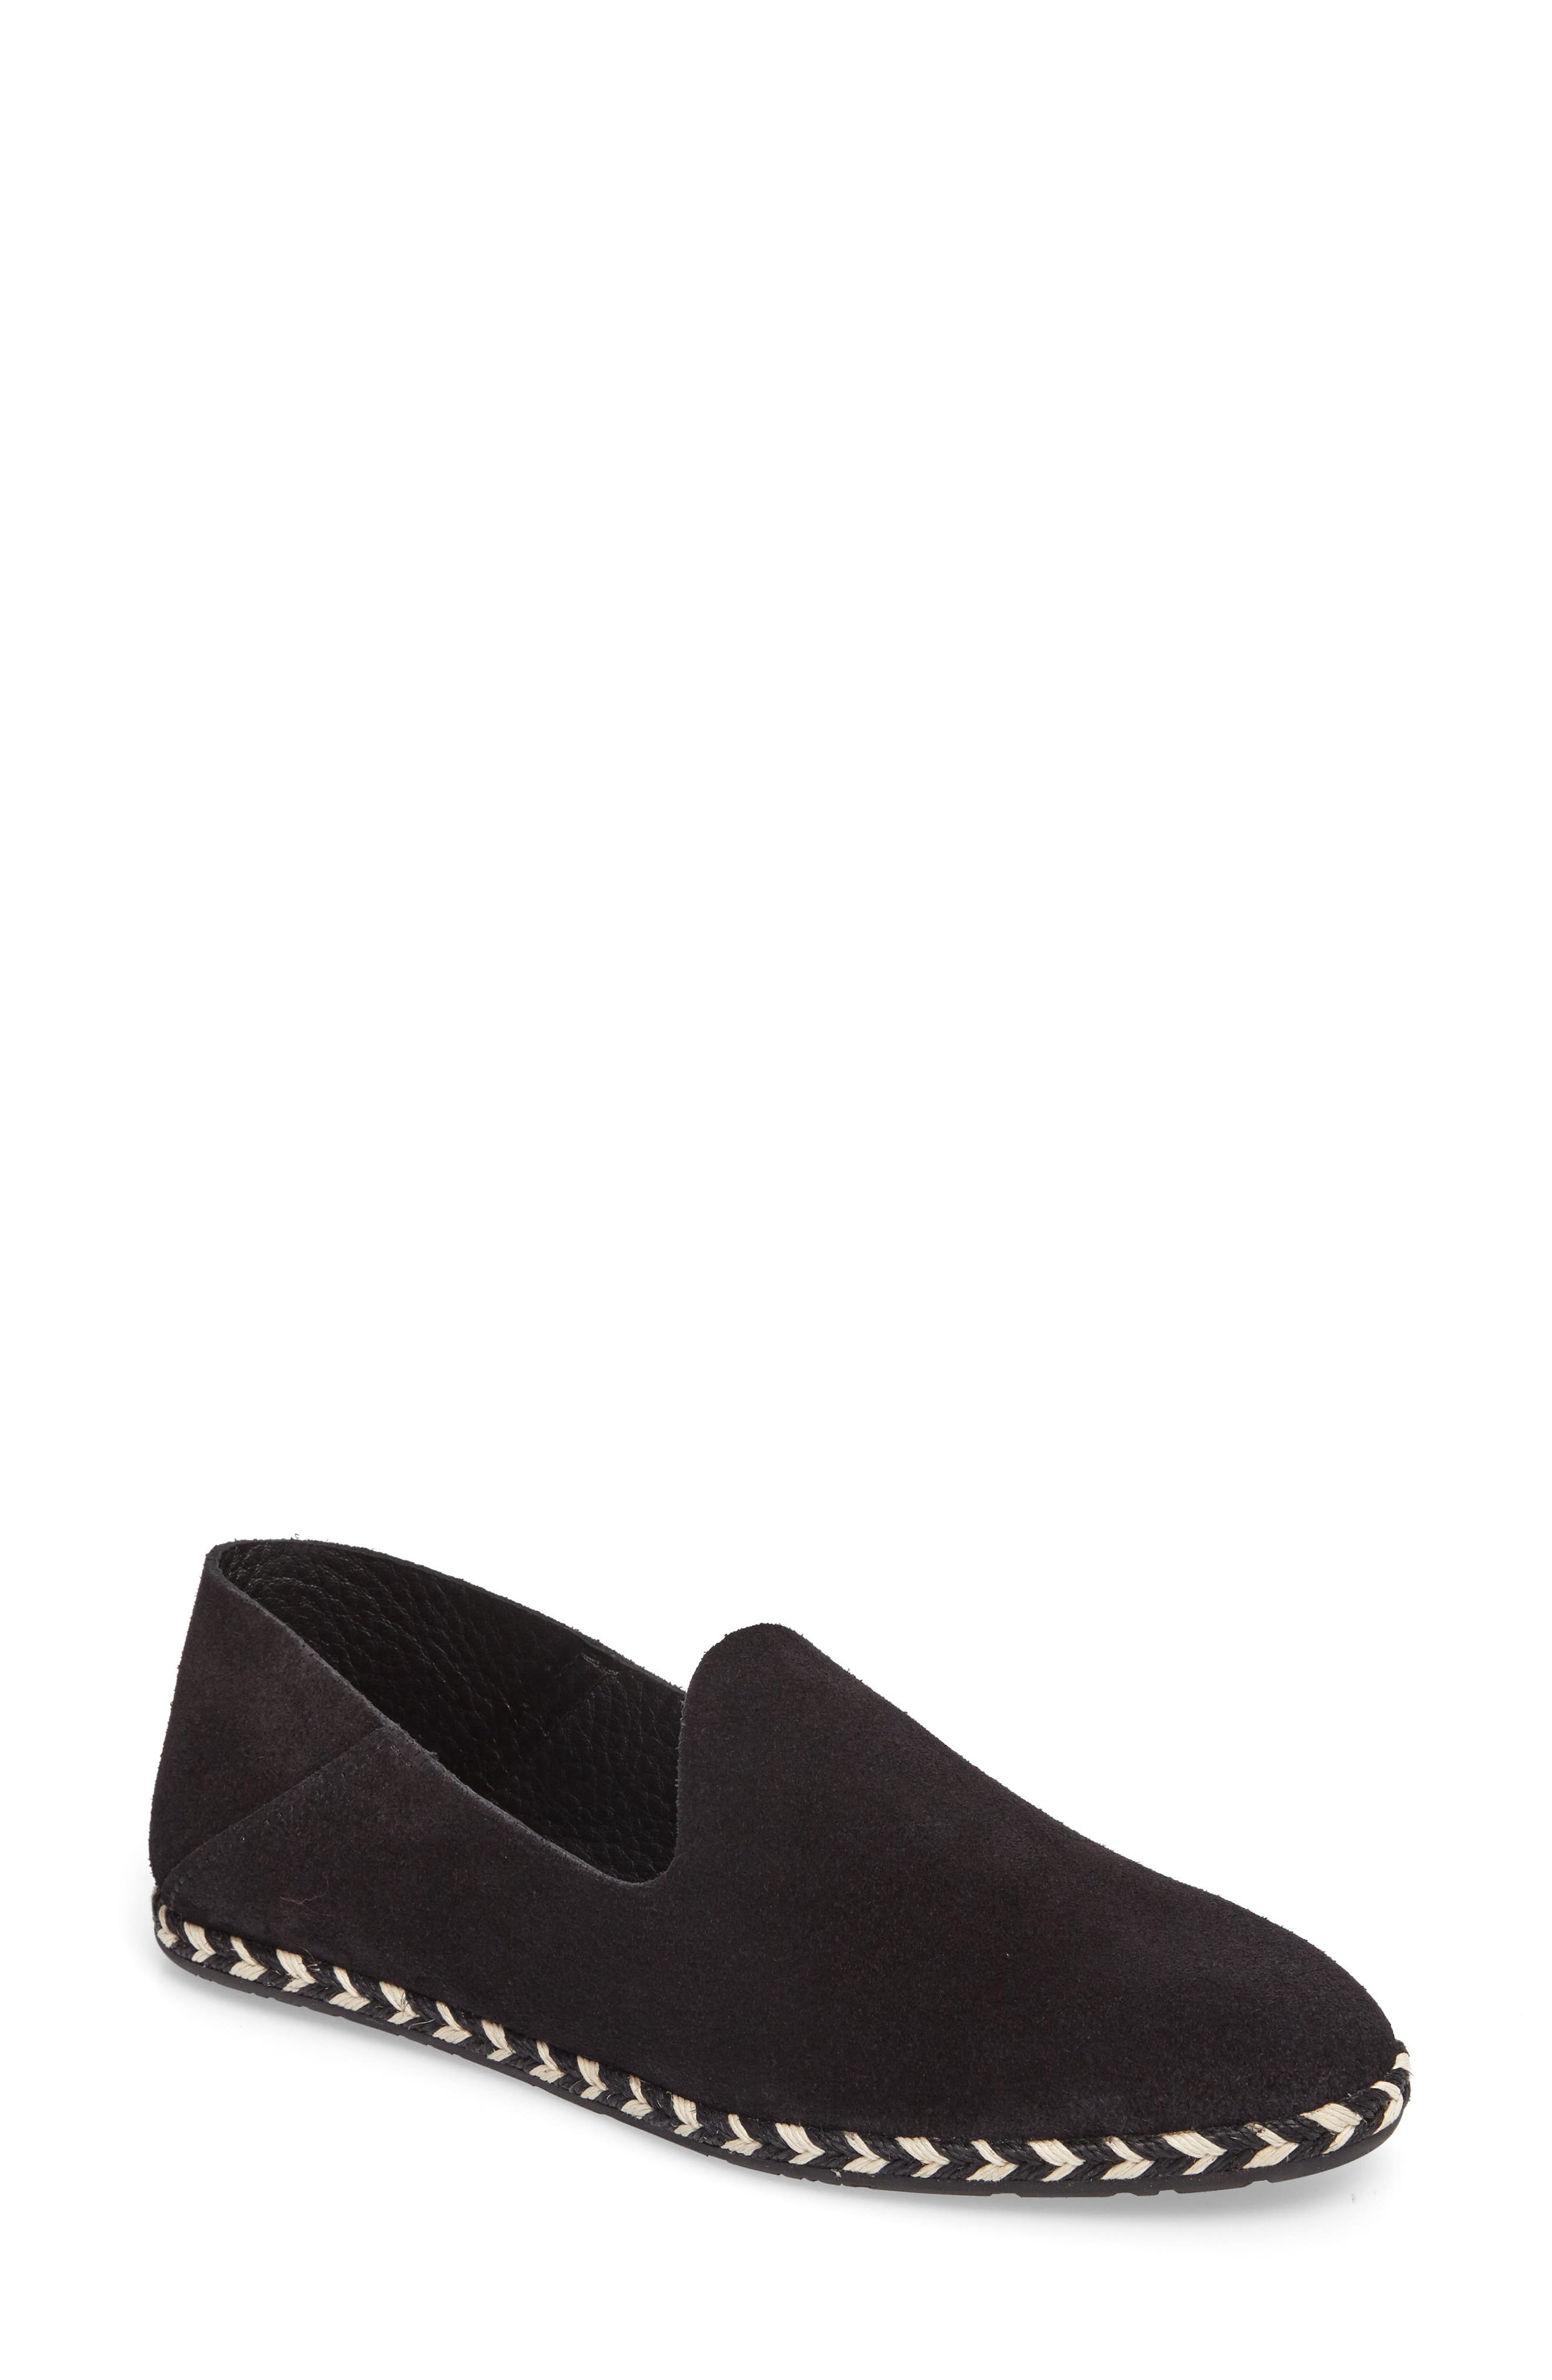 Pedro Garcia Yuli Convertible Woven Loafer, Black